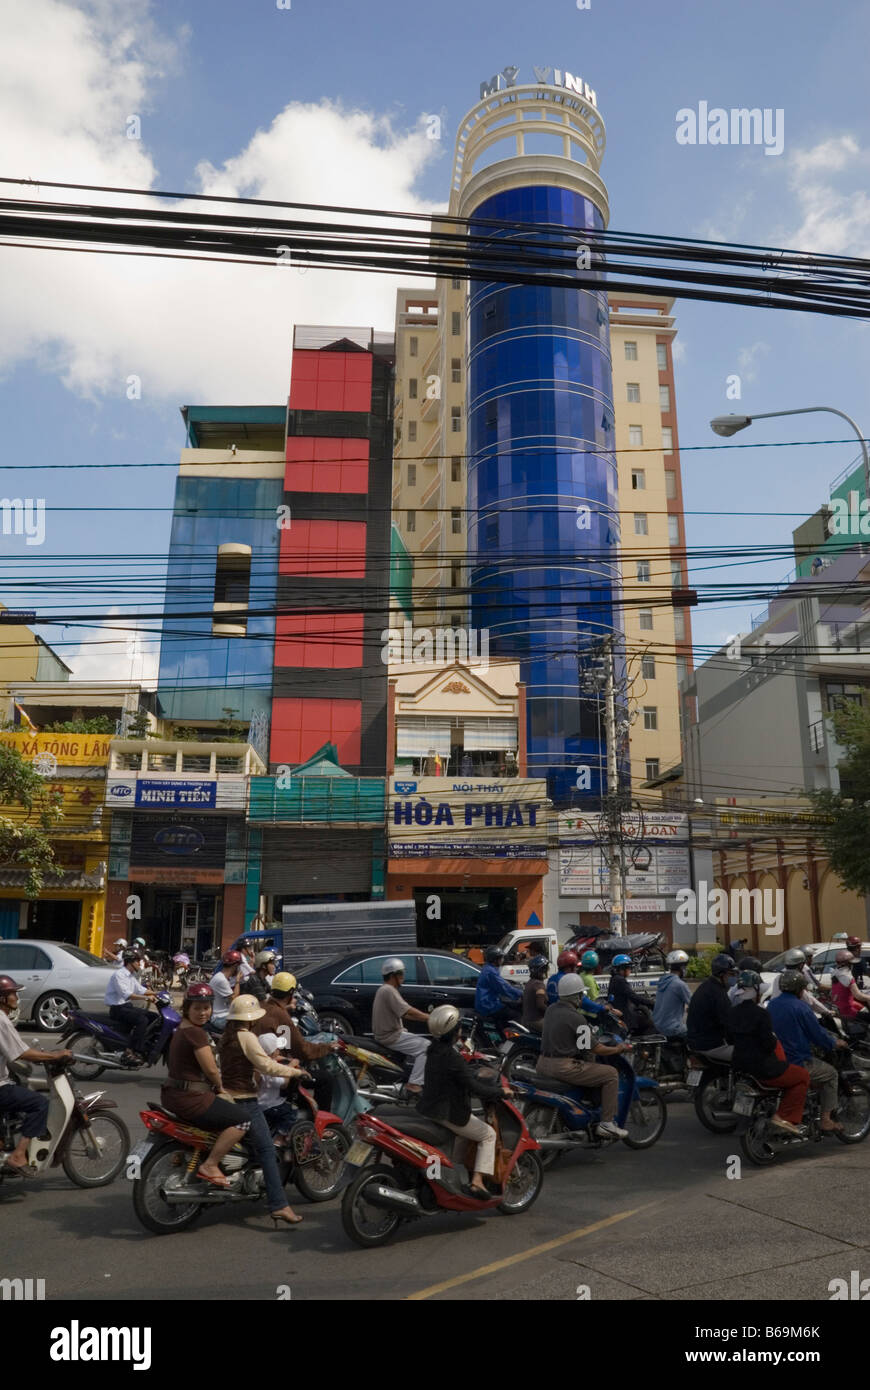 Electricity lines above a chaotic traffic clogged street in front of a modern building in Ho Chi Minh City, Vietnam - Stock Image